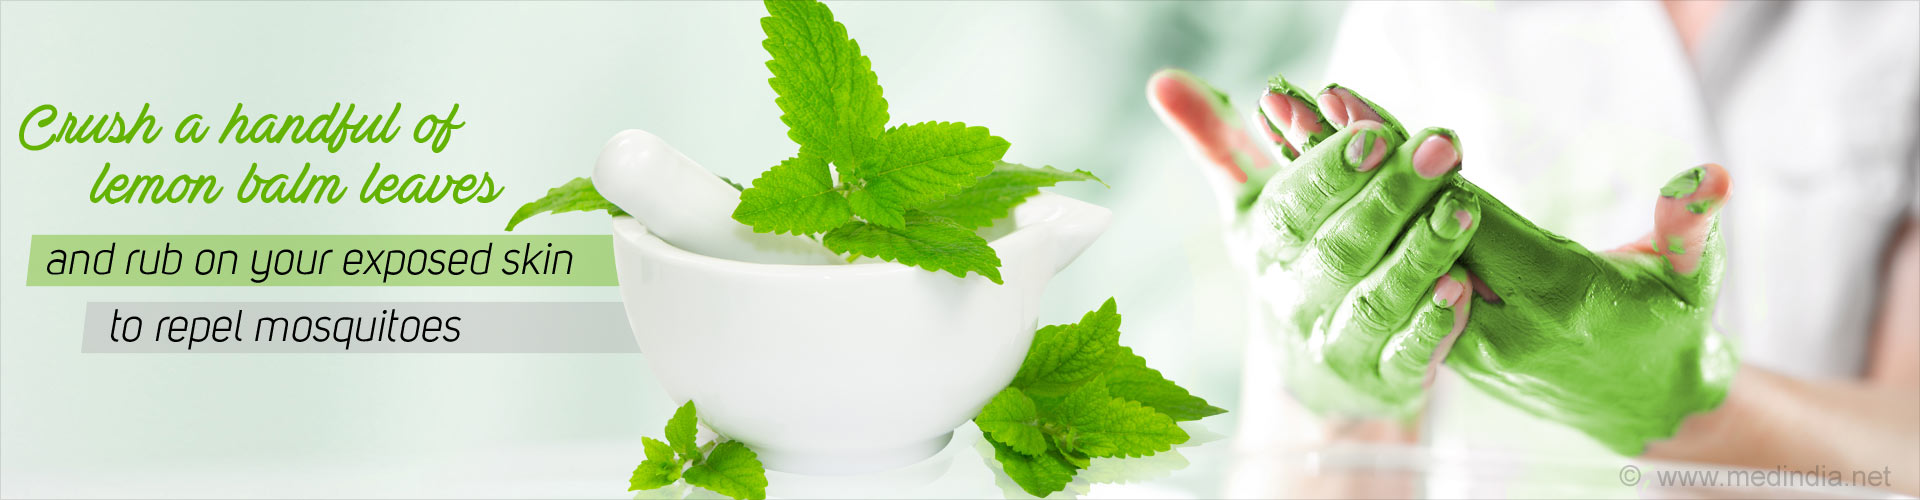 Crush a handful of lemon balm leaves and rub on your exposed skin to repel mosquitoes